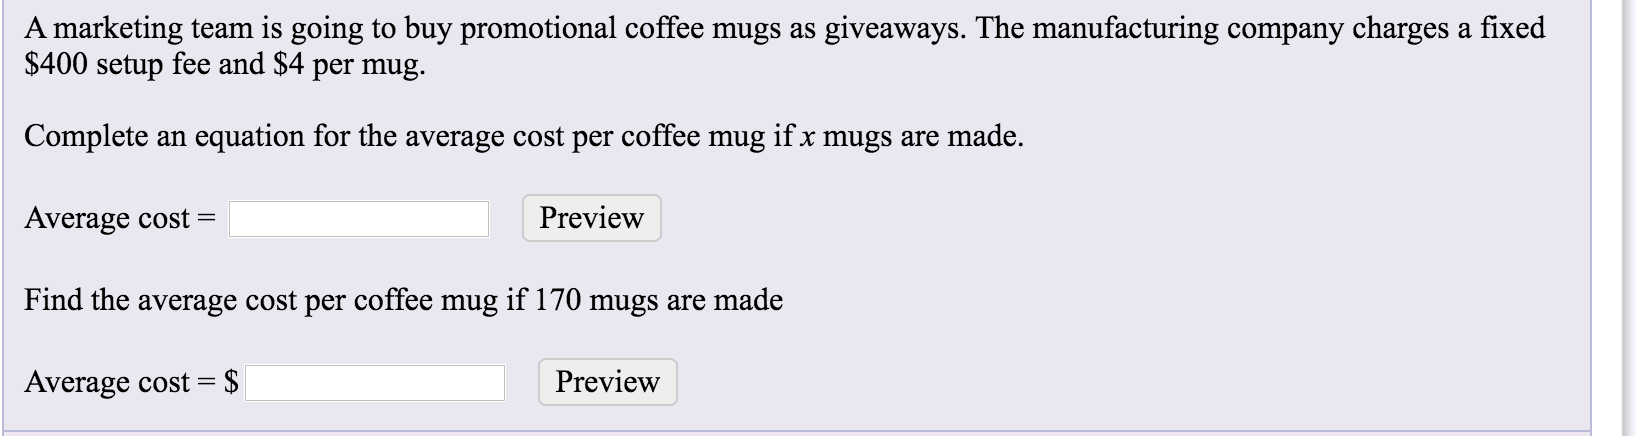 A marketing team is going to buy promotional coffee mugs as giveaways. The manufacturing company charges a fixed $400 setup f